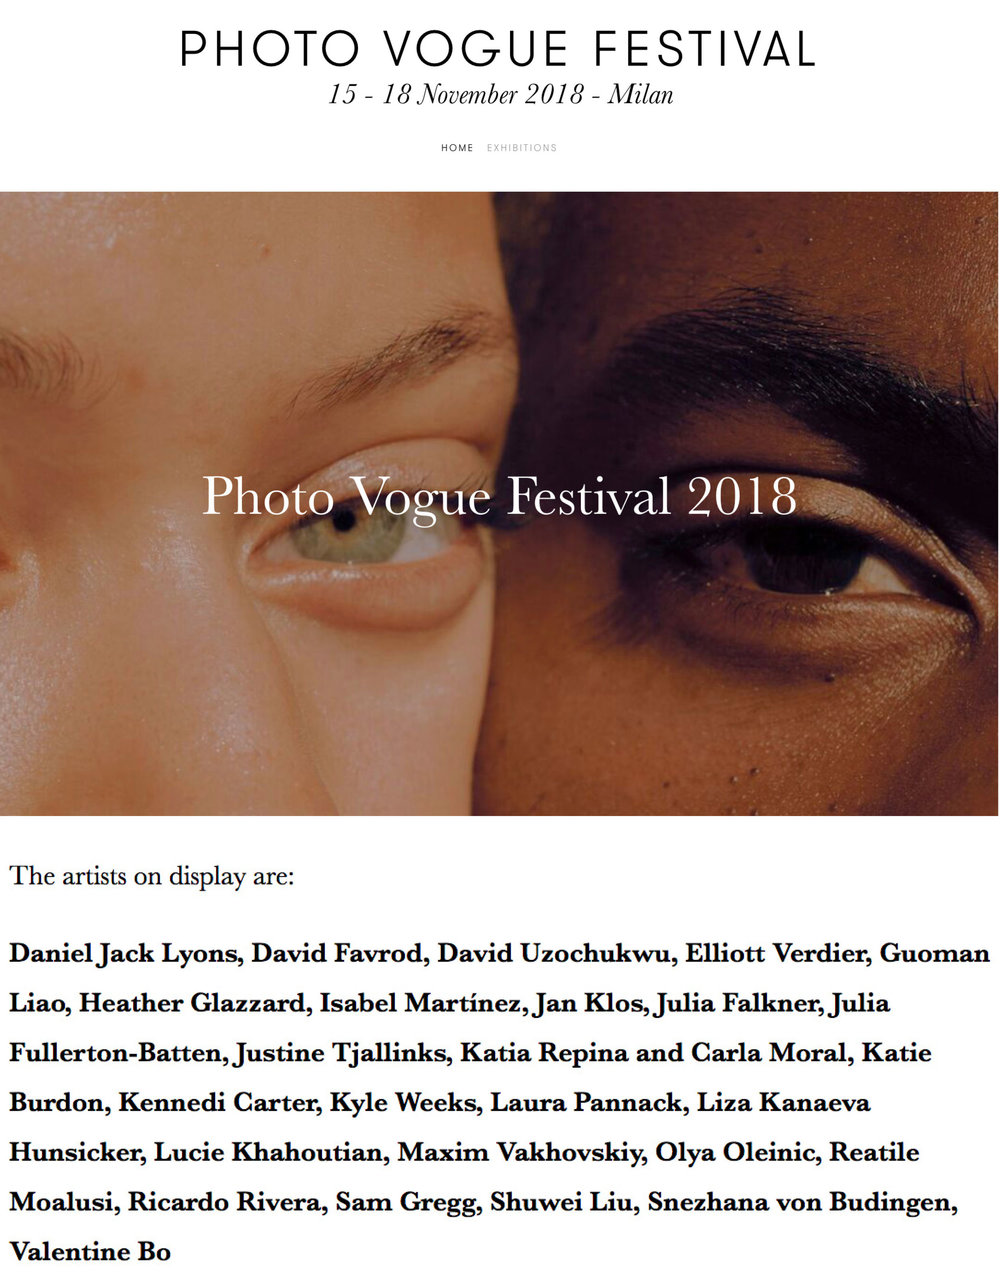 photo-vogue-festival-2018-sam-gregg.jpg